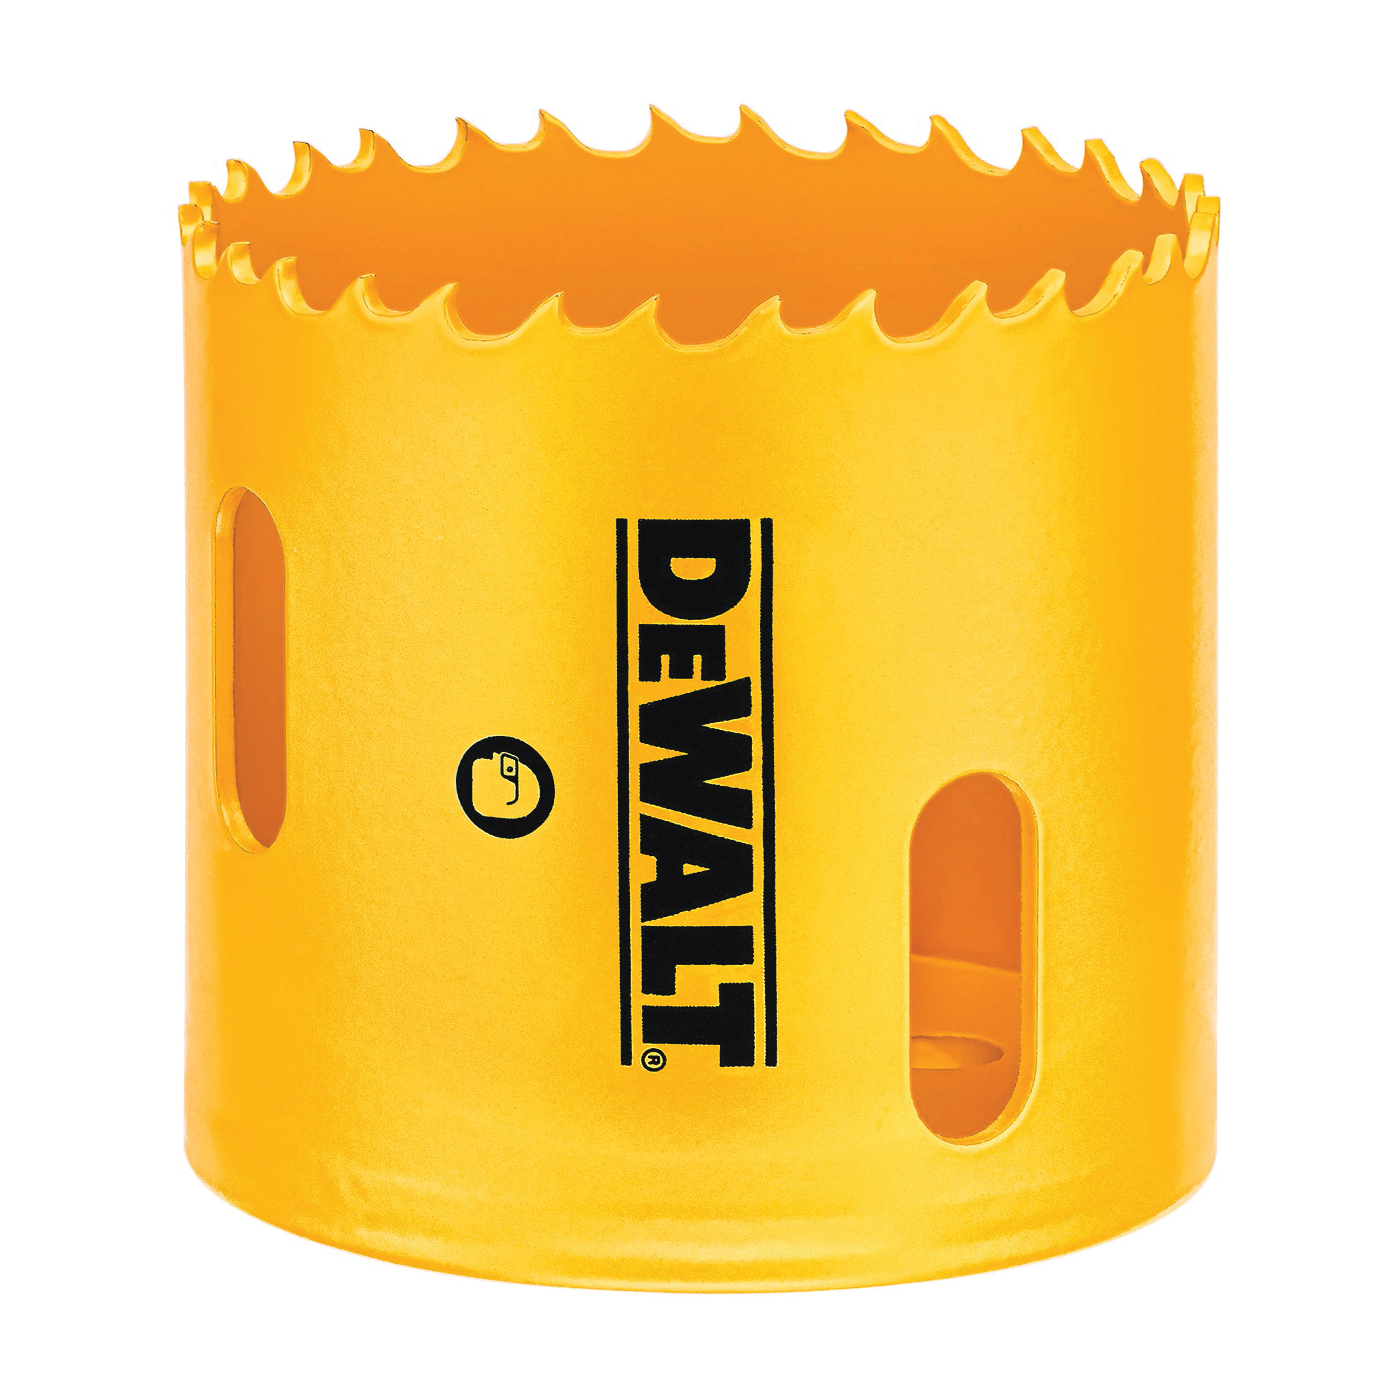 Picture of DeWALT D180040 Hole Saw, 2-1/2 in Dia, 1-13/16 in D Cutting, 5/8-18 Arbor, 4/5 TPI, HSS Cutting Edge